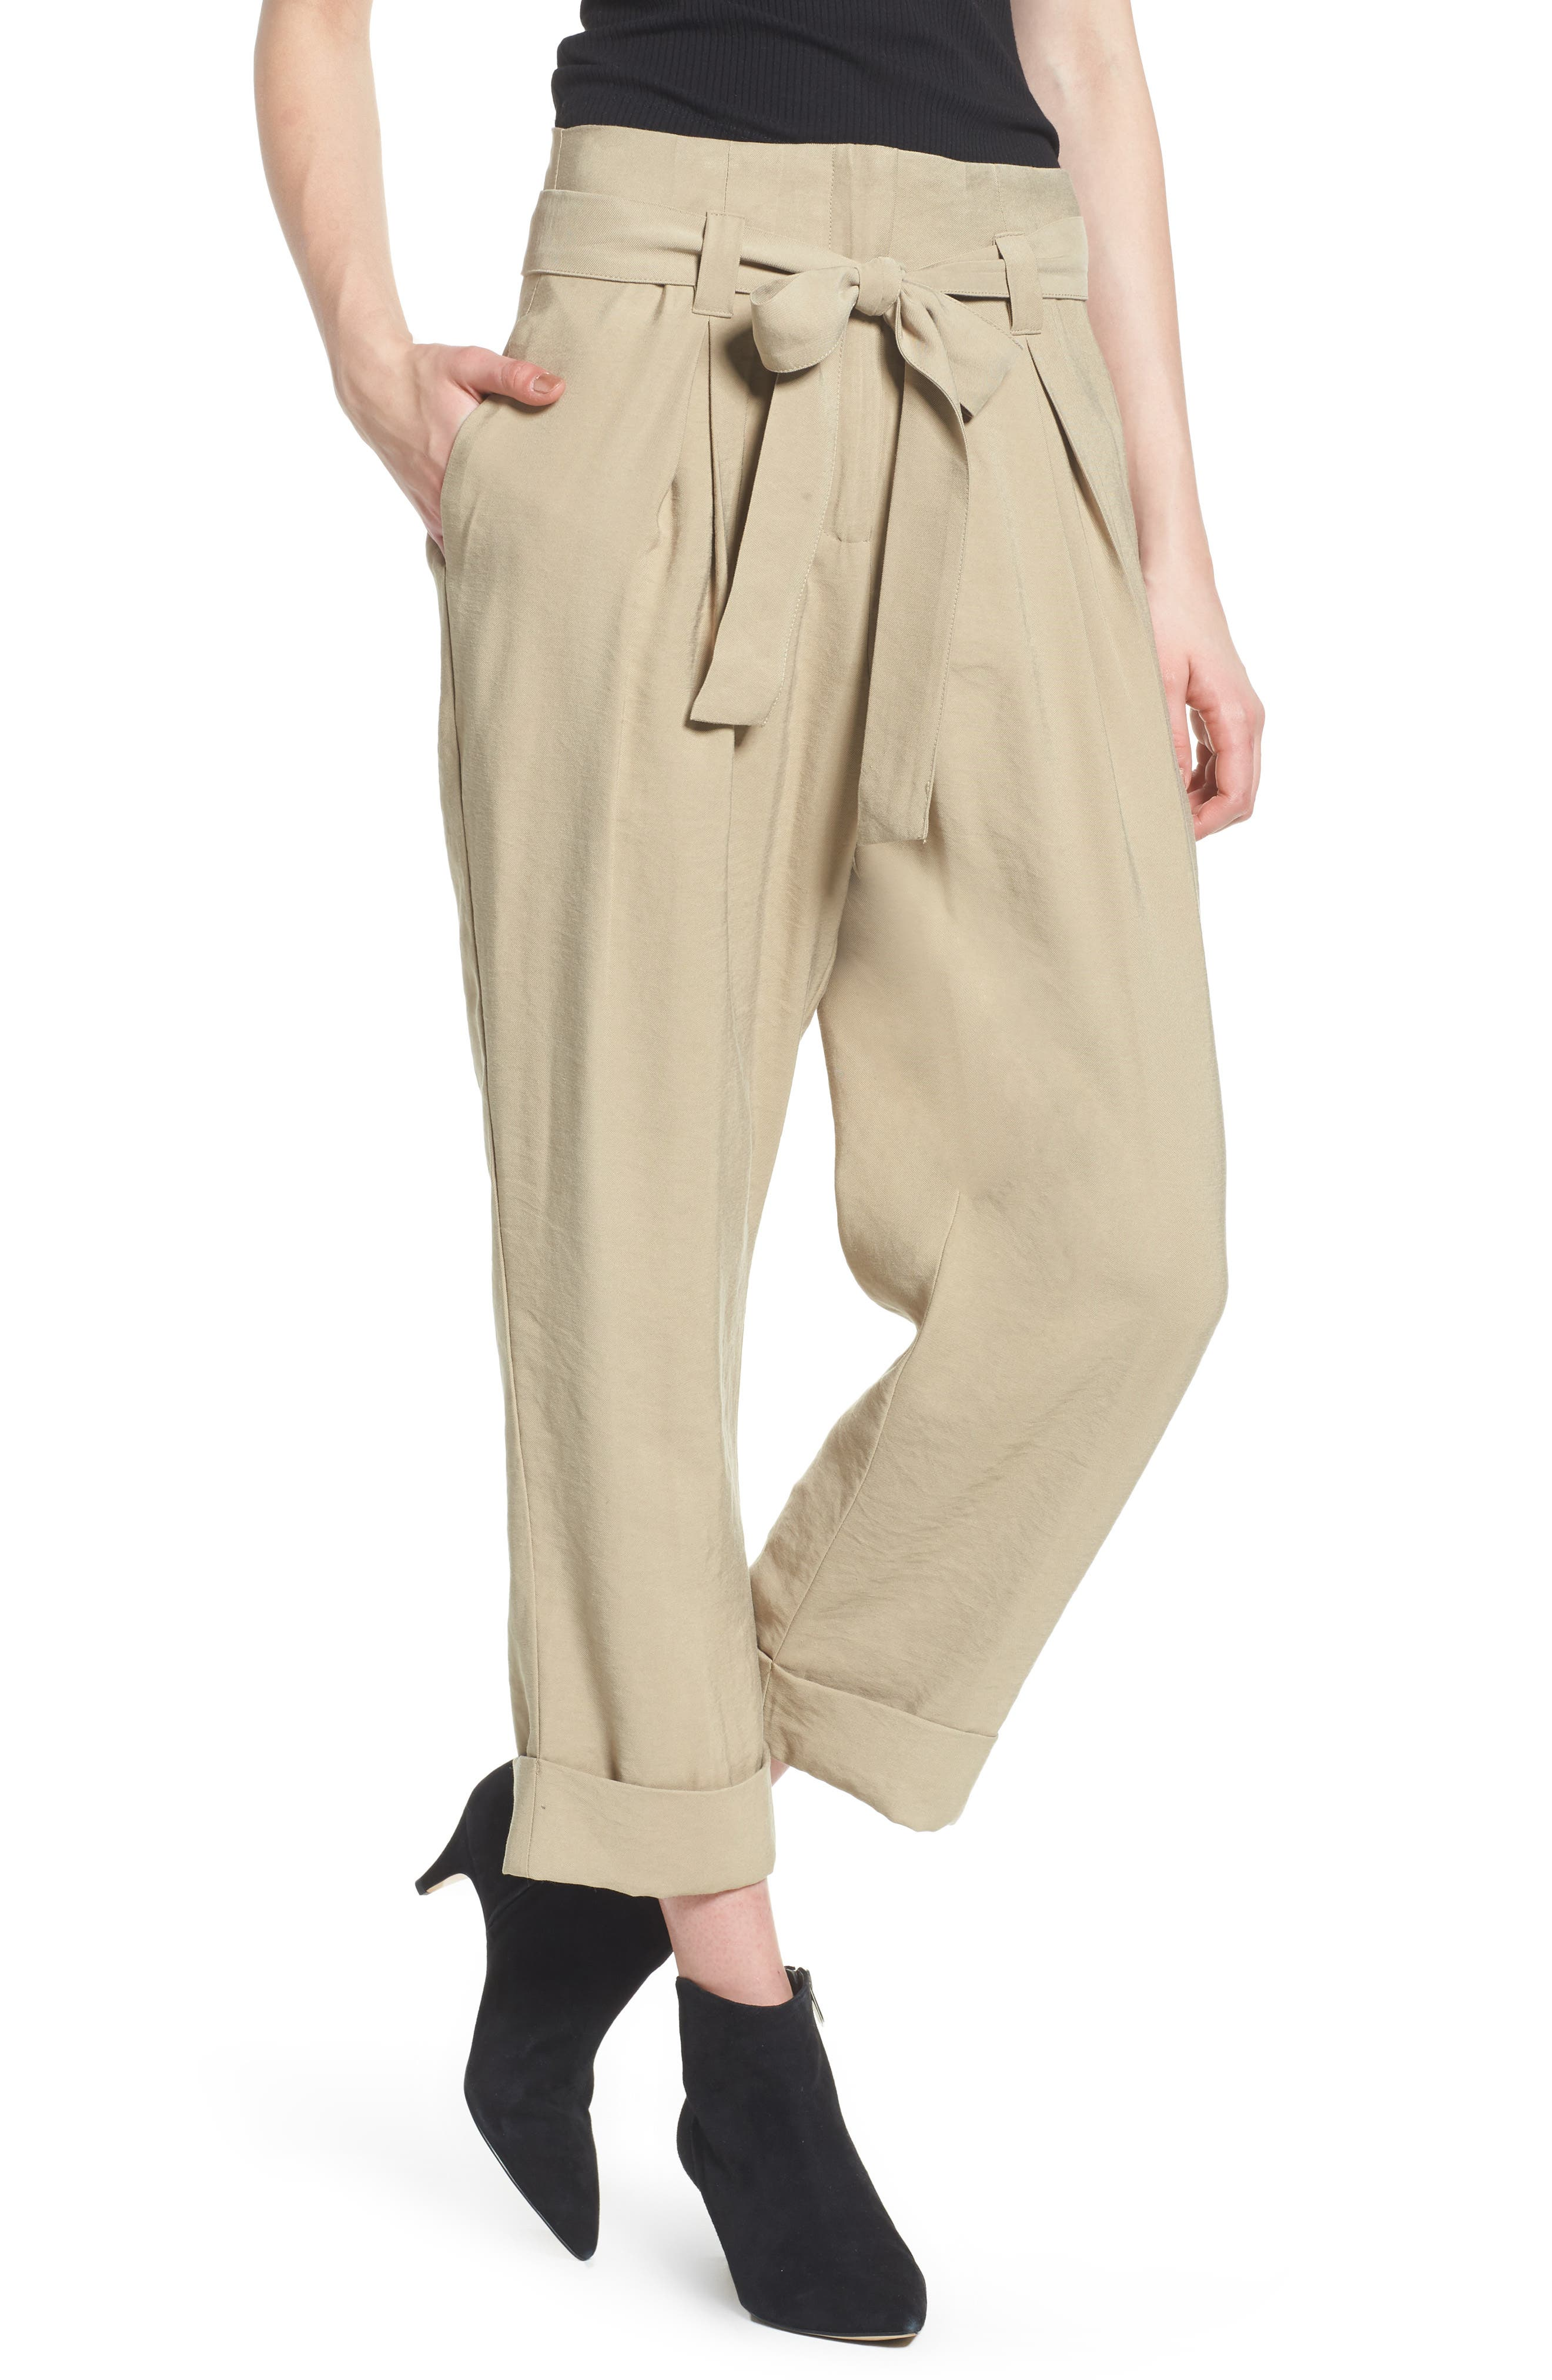 Alternate Image 1 Selected - J.O.A. High Waist Tie Front Cropped Pants